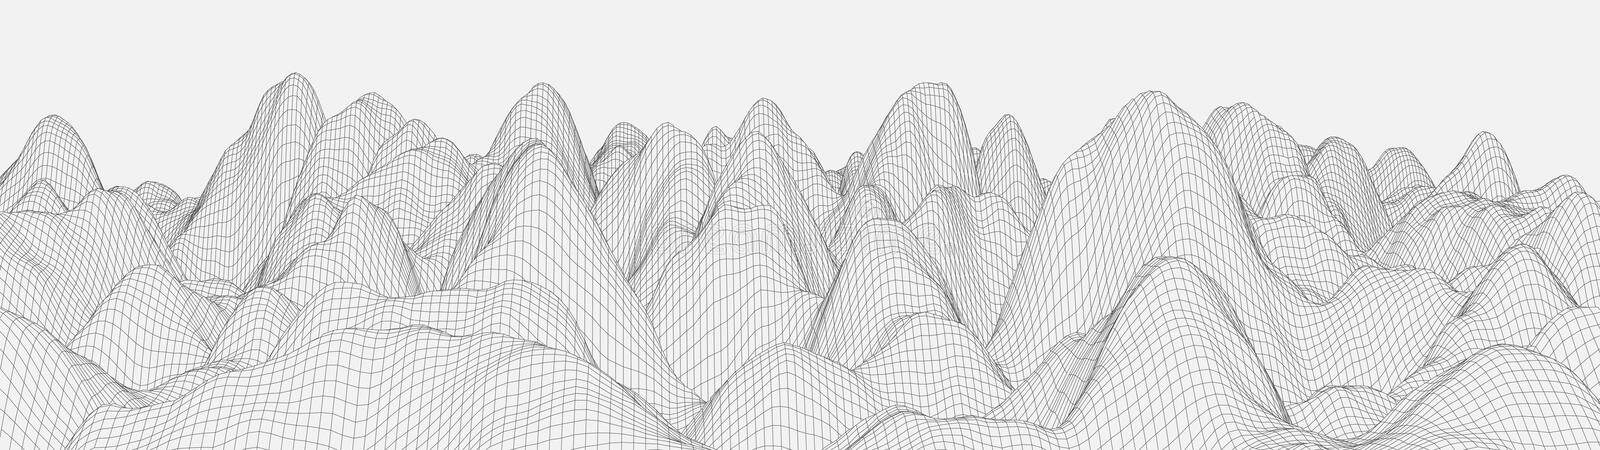 Vector wireframe 3d landscape. Technology grid illustration. Network of connected dots and lines on white background. Vector wireframe 3d landscape. Technology royalty free illustration